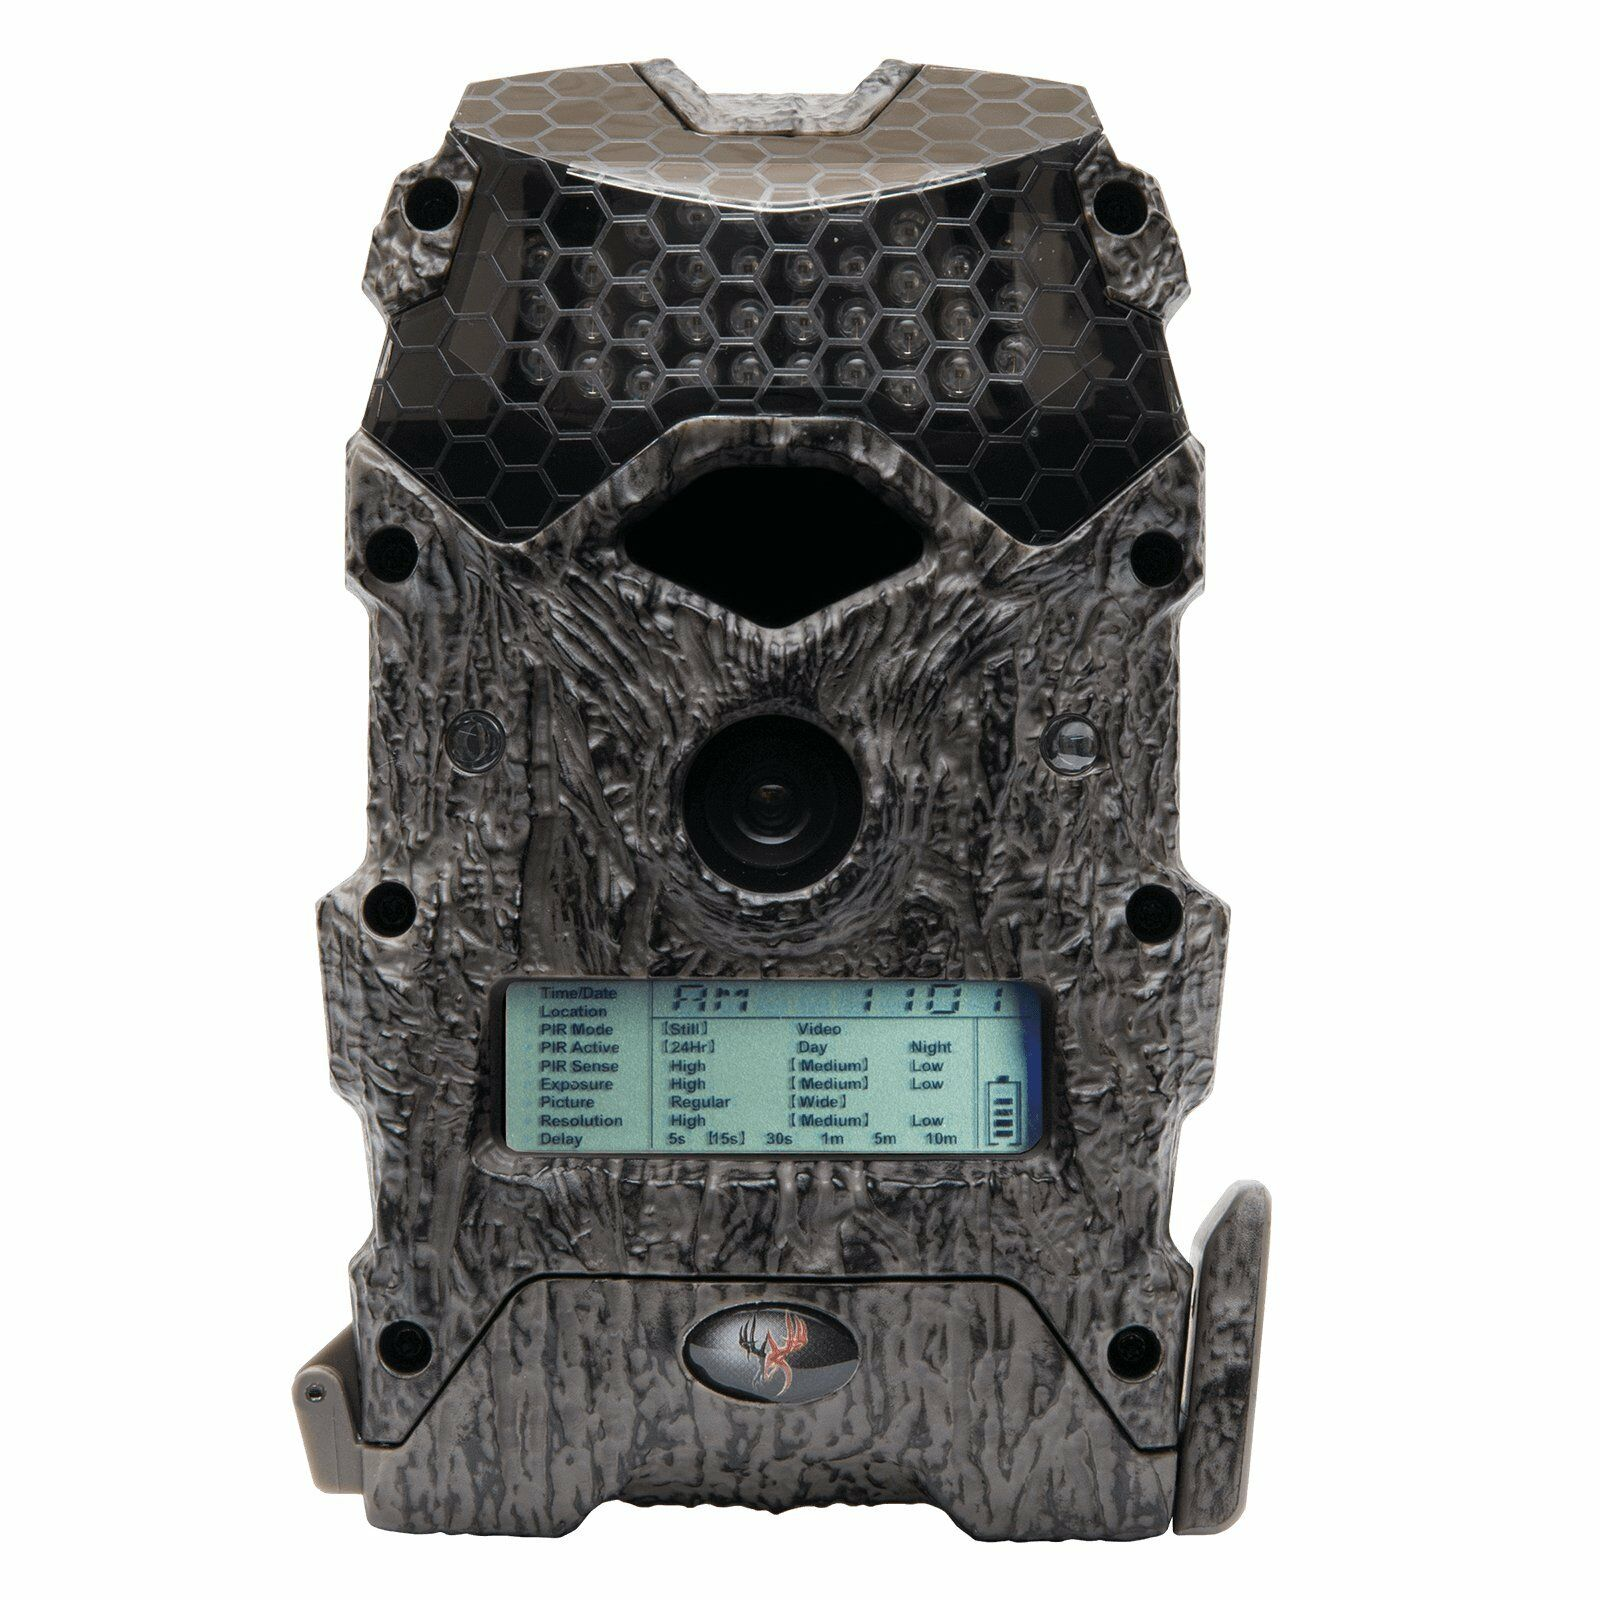 Wildgame Innovations Mirage 16 16MP 720p  Video Hunting Game Trail Camera, Camo  buy discounts